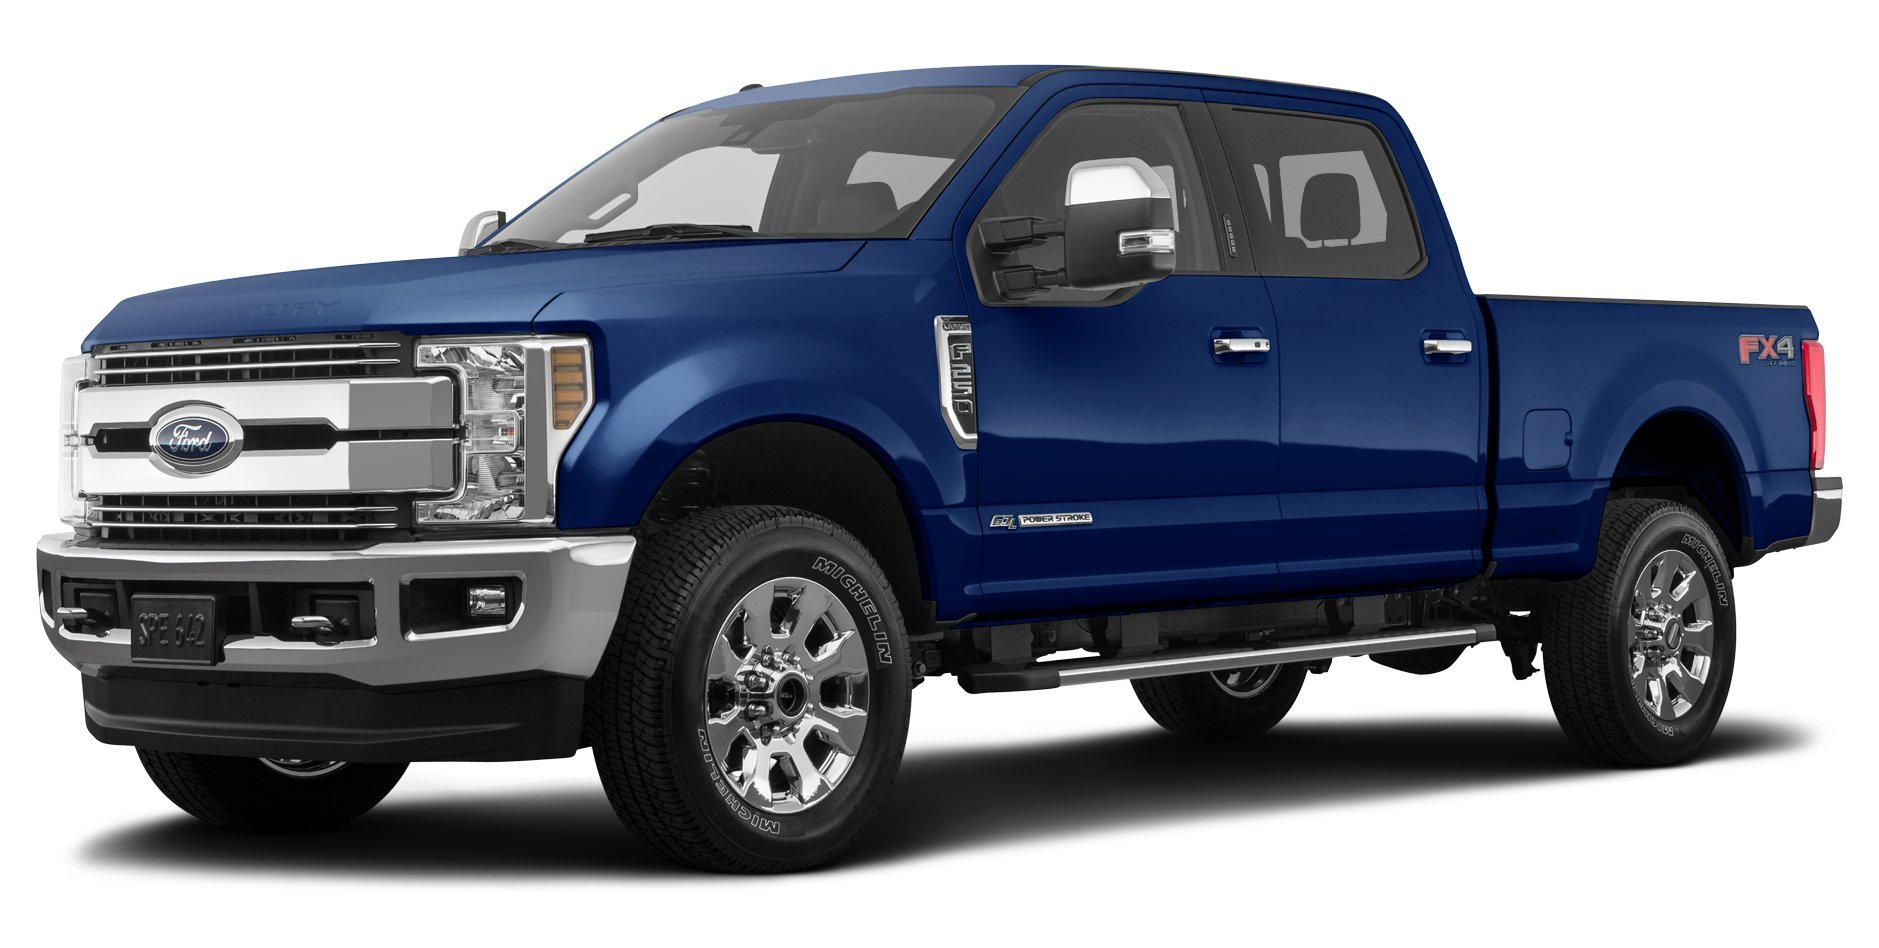 2018 Ford F 250 Super Duty Reviews Images And Specs 1961 4x4 Truck For Sale King Ranch 2 Wheel Drive Crew Cab